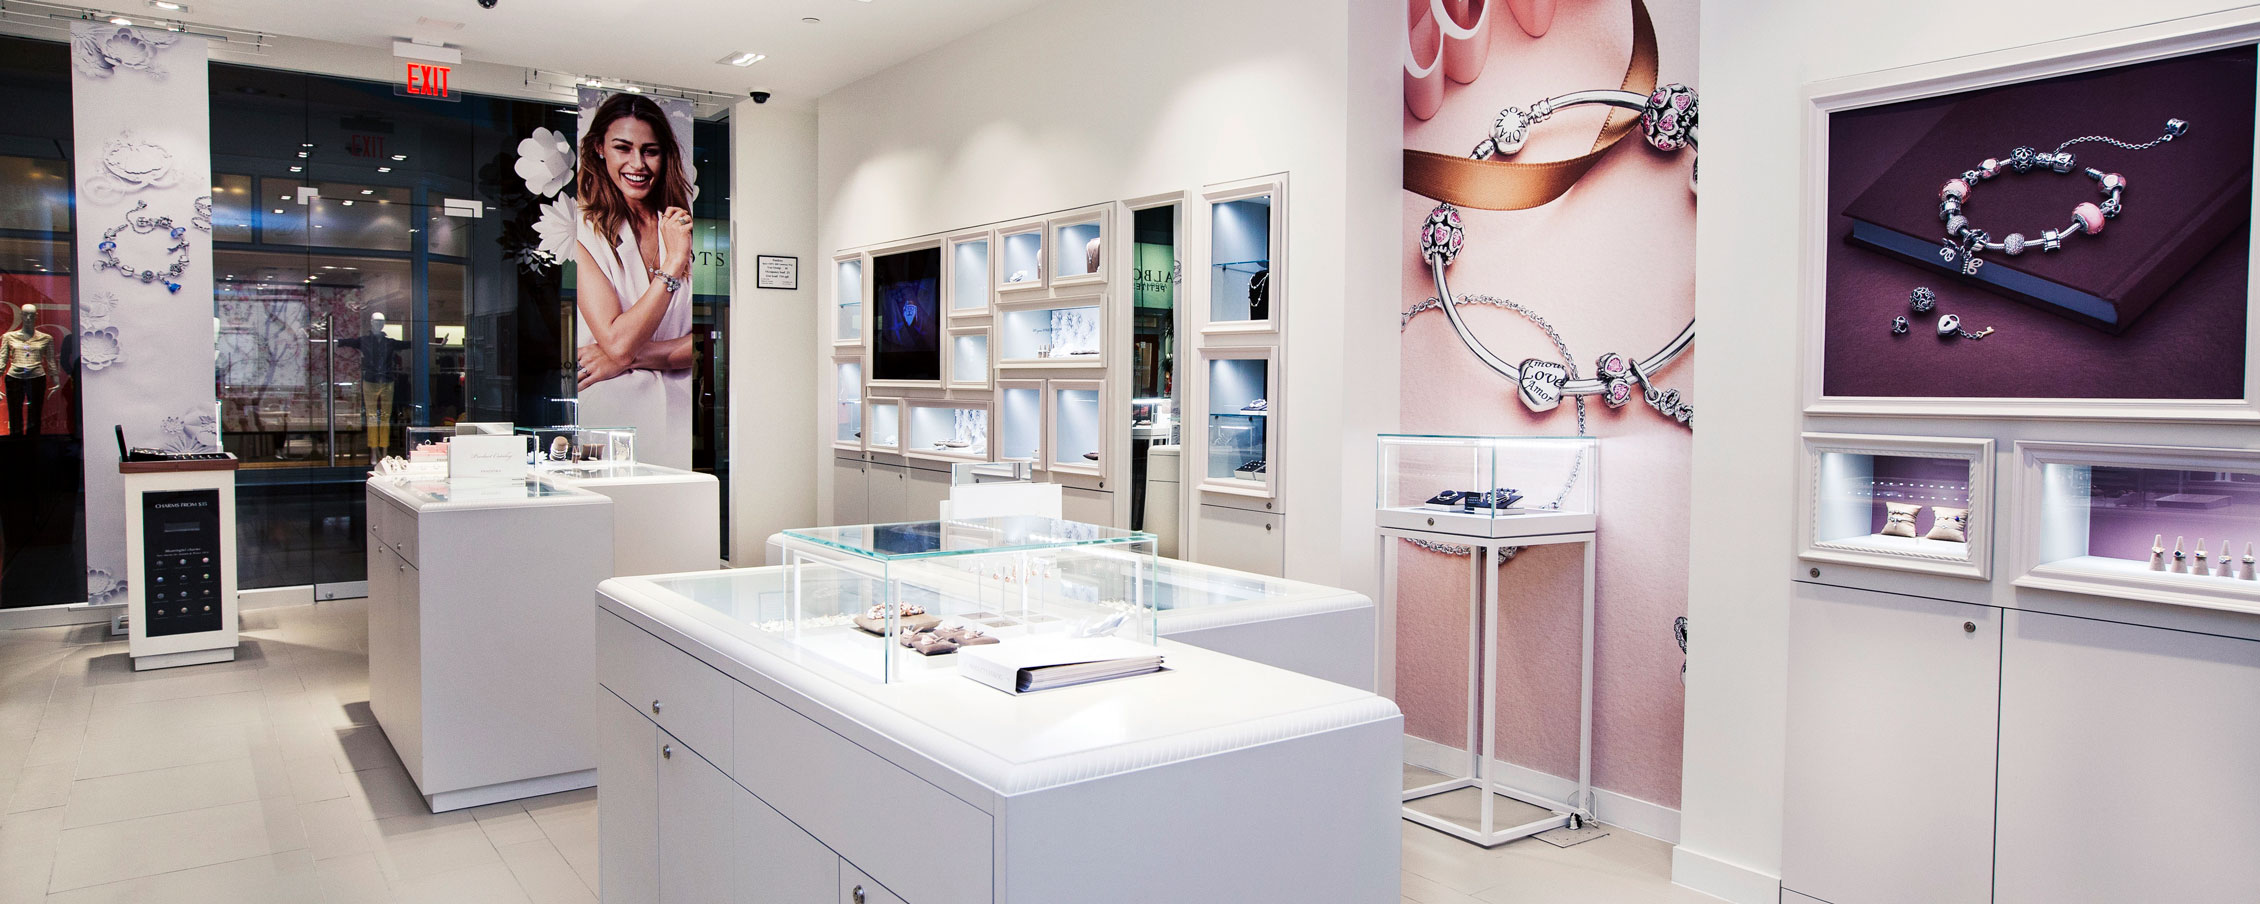 How Pandora Jewelry Makes Its Stores Sparkle